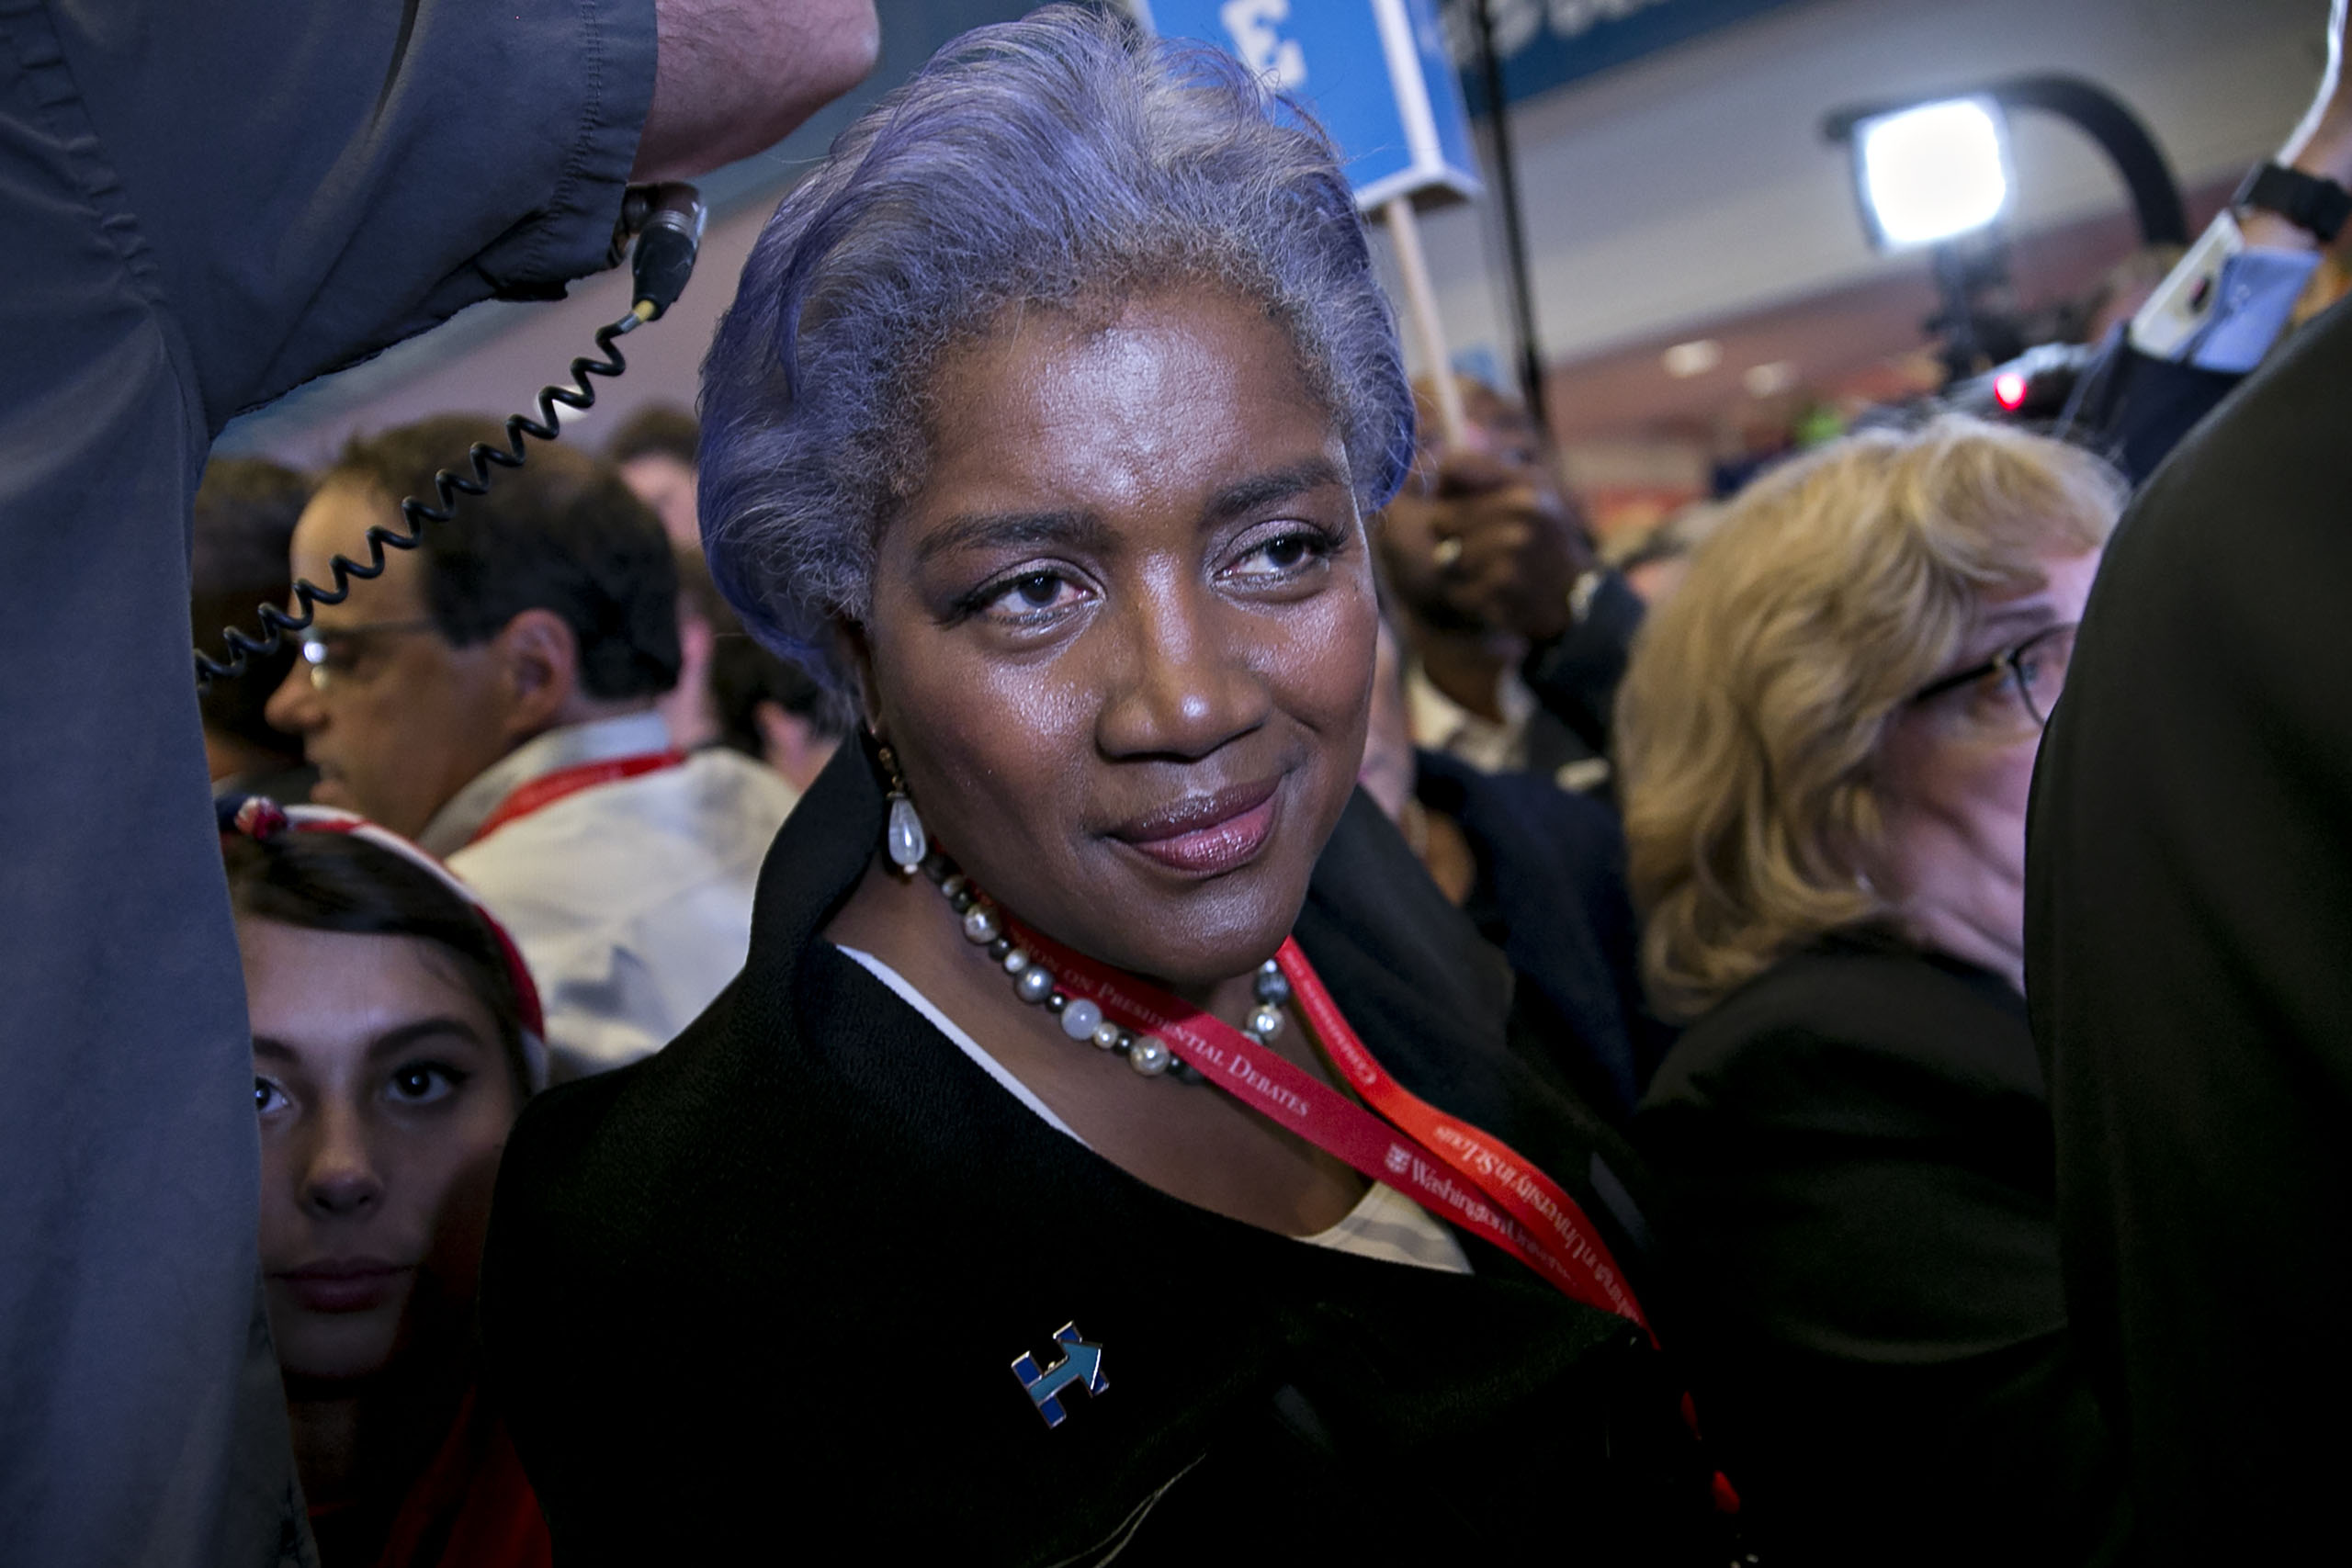 Donna Brazile, vice chair of the Democratic National Committee (DNC), walks through the spin room after the second U.S. presidential debate at Washington University in St. Louis, Missouri, U.S., on Oct. 9, 2016.